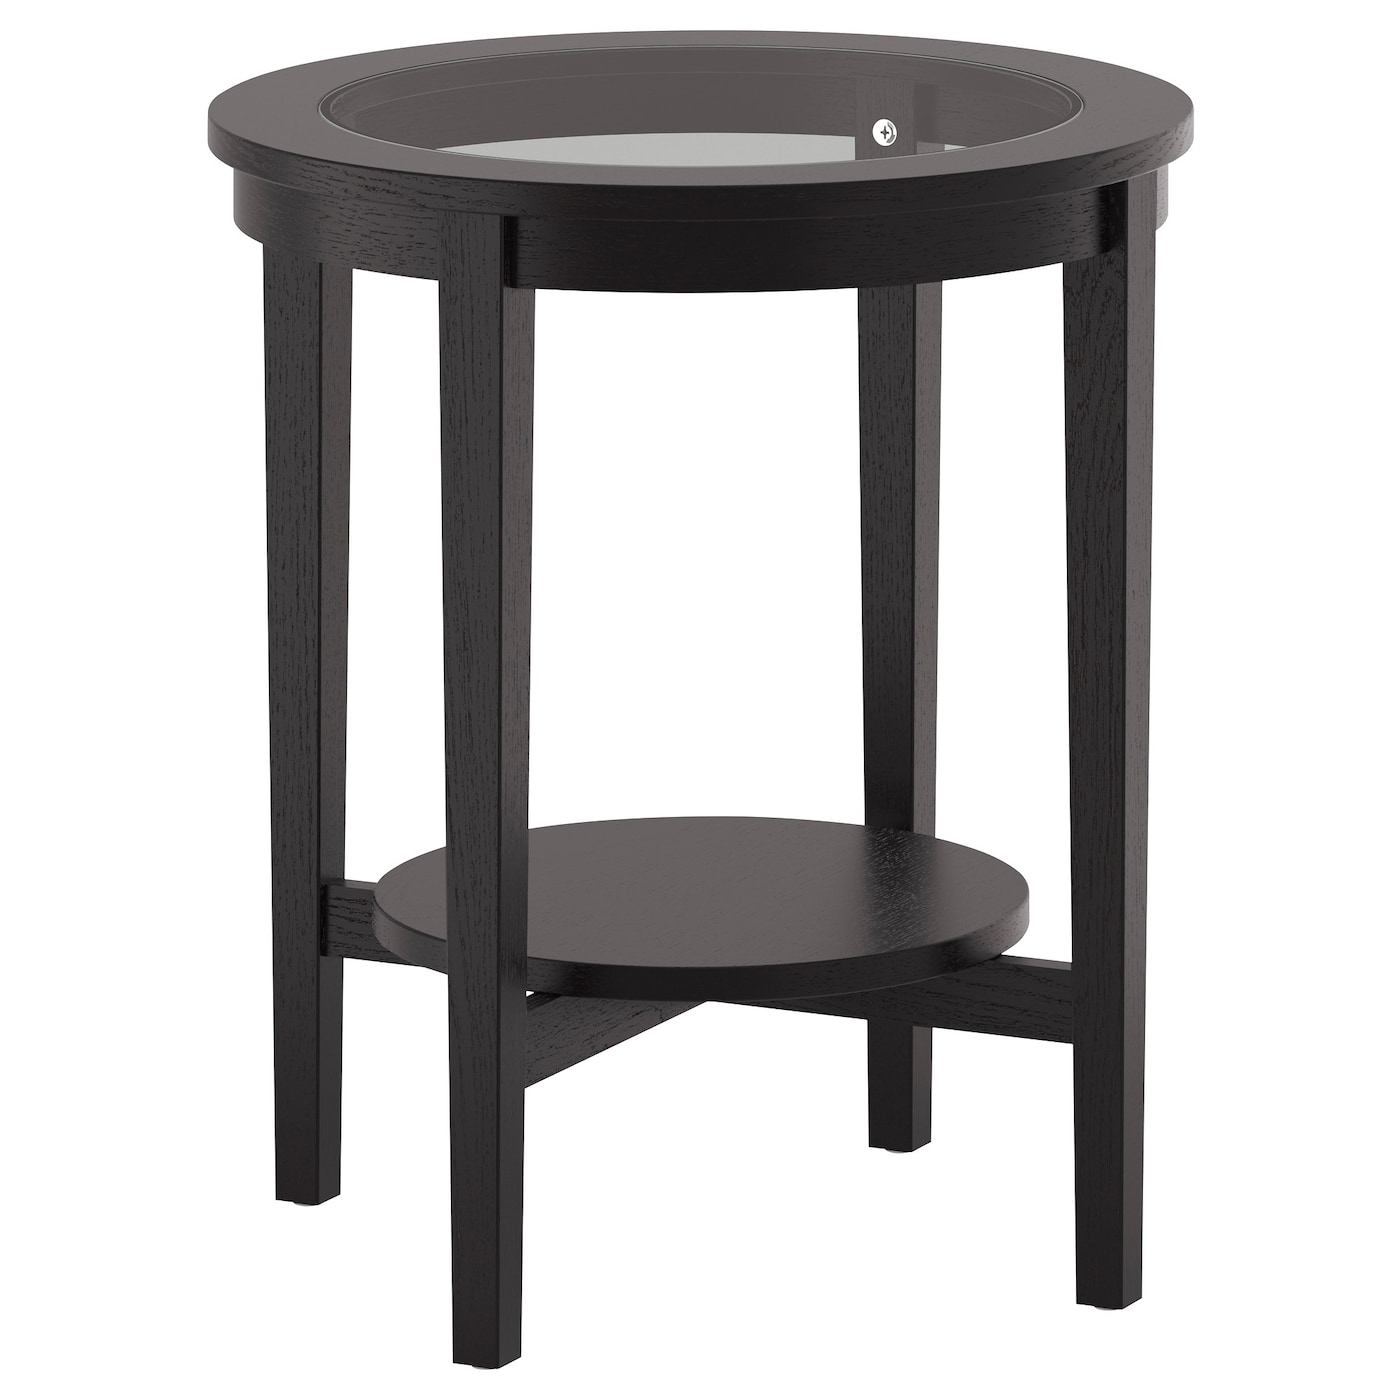 MALMSTA Side Table Black-brown 54 Cm